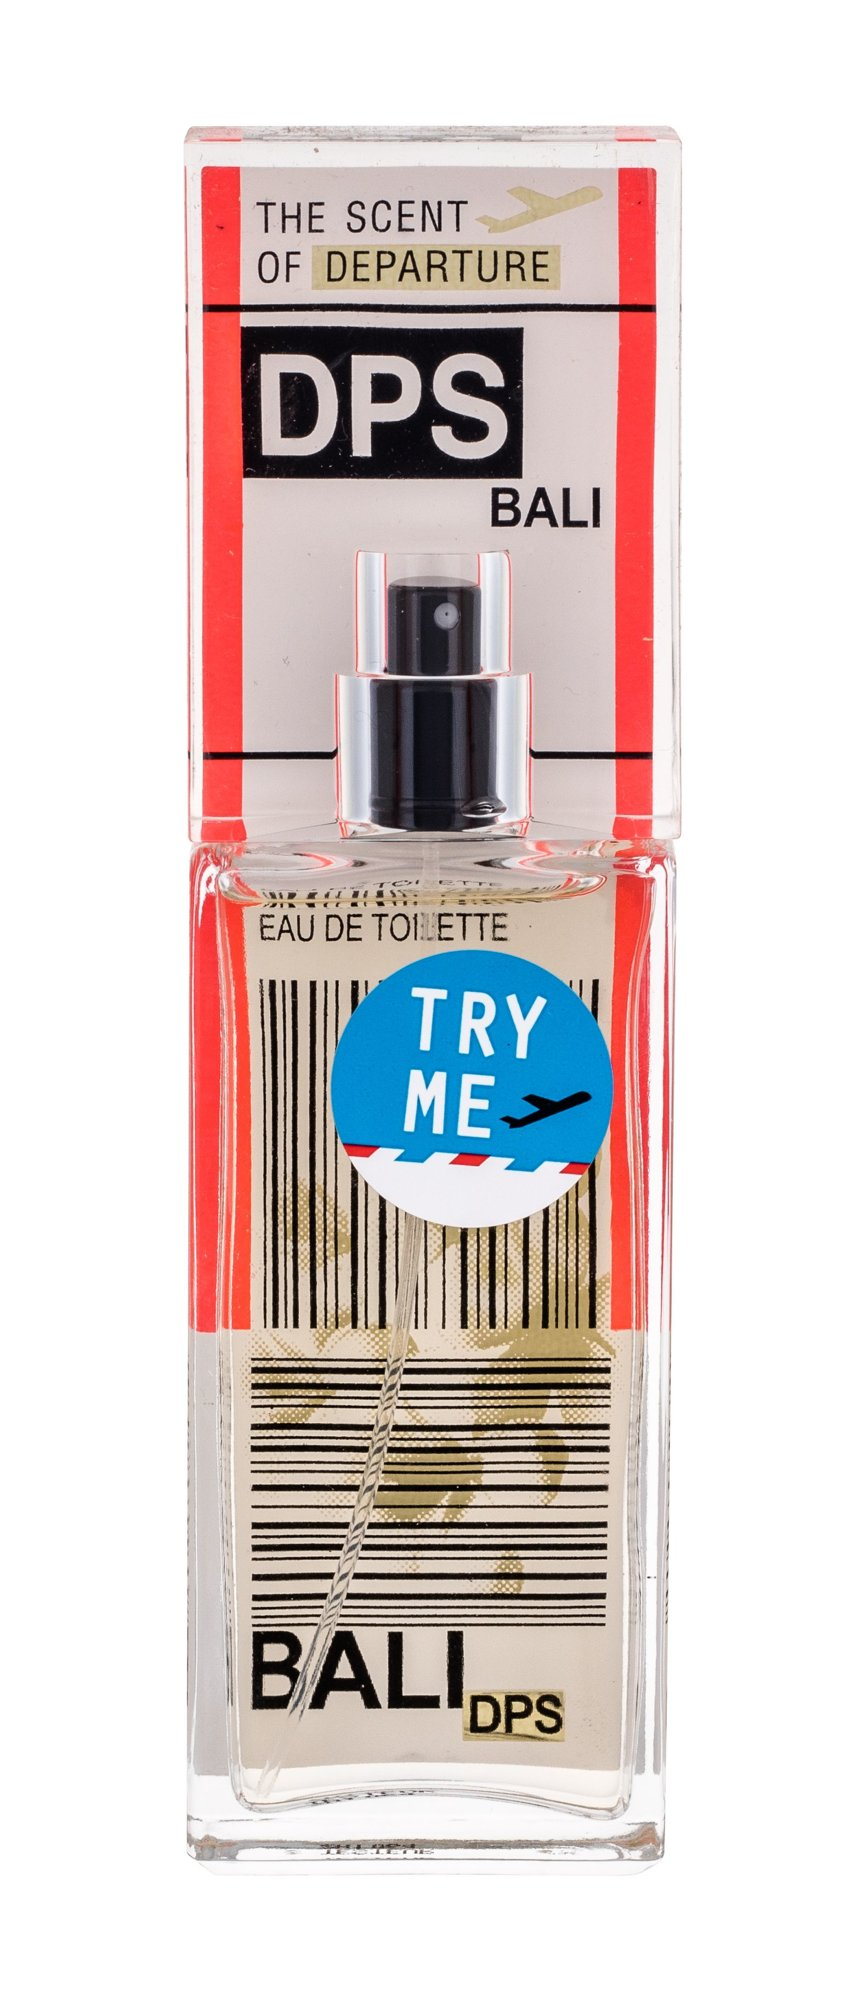 The Scent of Departure Bali DPS EDT 50ml